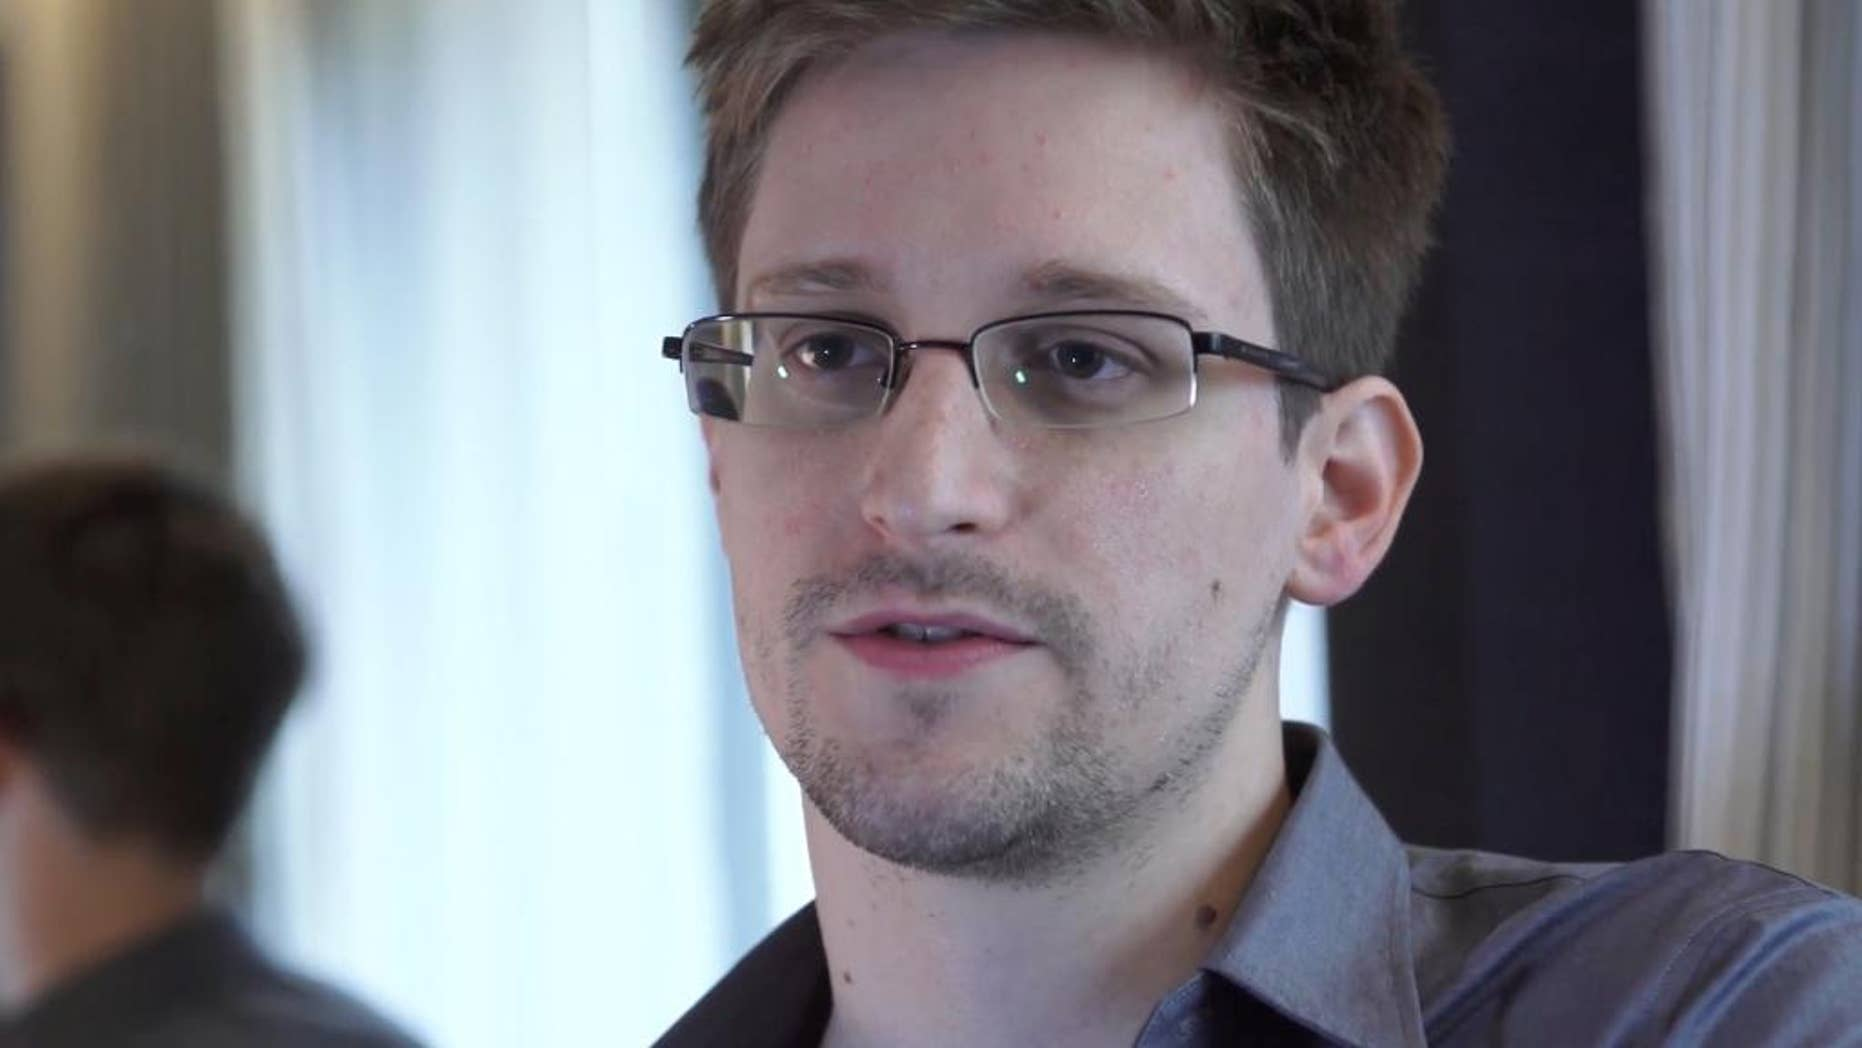 "FILE - In this June 9, 2013 file photo provided by The Guardian Newspaper in London shows Edward Snowden, who worked as a contract employee at the National Security Agency, in Hong Kong.  Edward Snowden has been selected among the winners of the Right Livelihood Award, also known as the ""alternative Nobel,"" for his disclosures of top secret surveillance programs. The award foundation on Wednesday Sept. 24, 2014  said the former National Security Agency contractor splits the honorary portion of the prize with Guardian editor Alan Rusbridger. (AP Photo/The Guardian, Glenn Greenwald and Laura Poitras, File)"